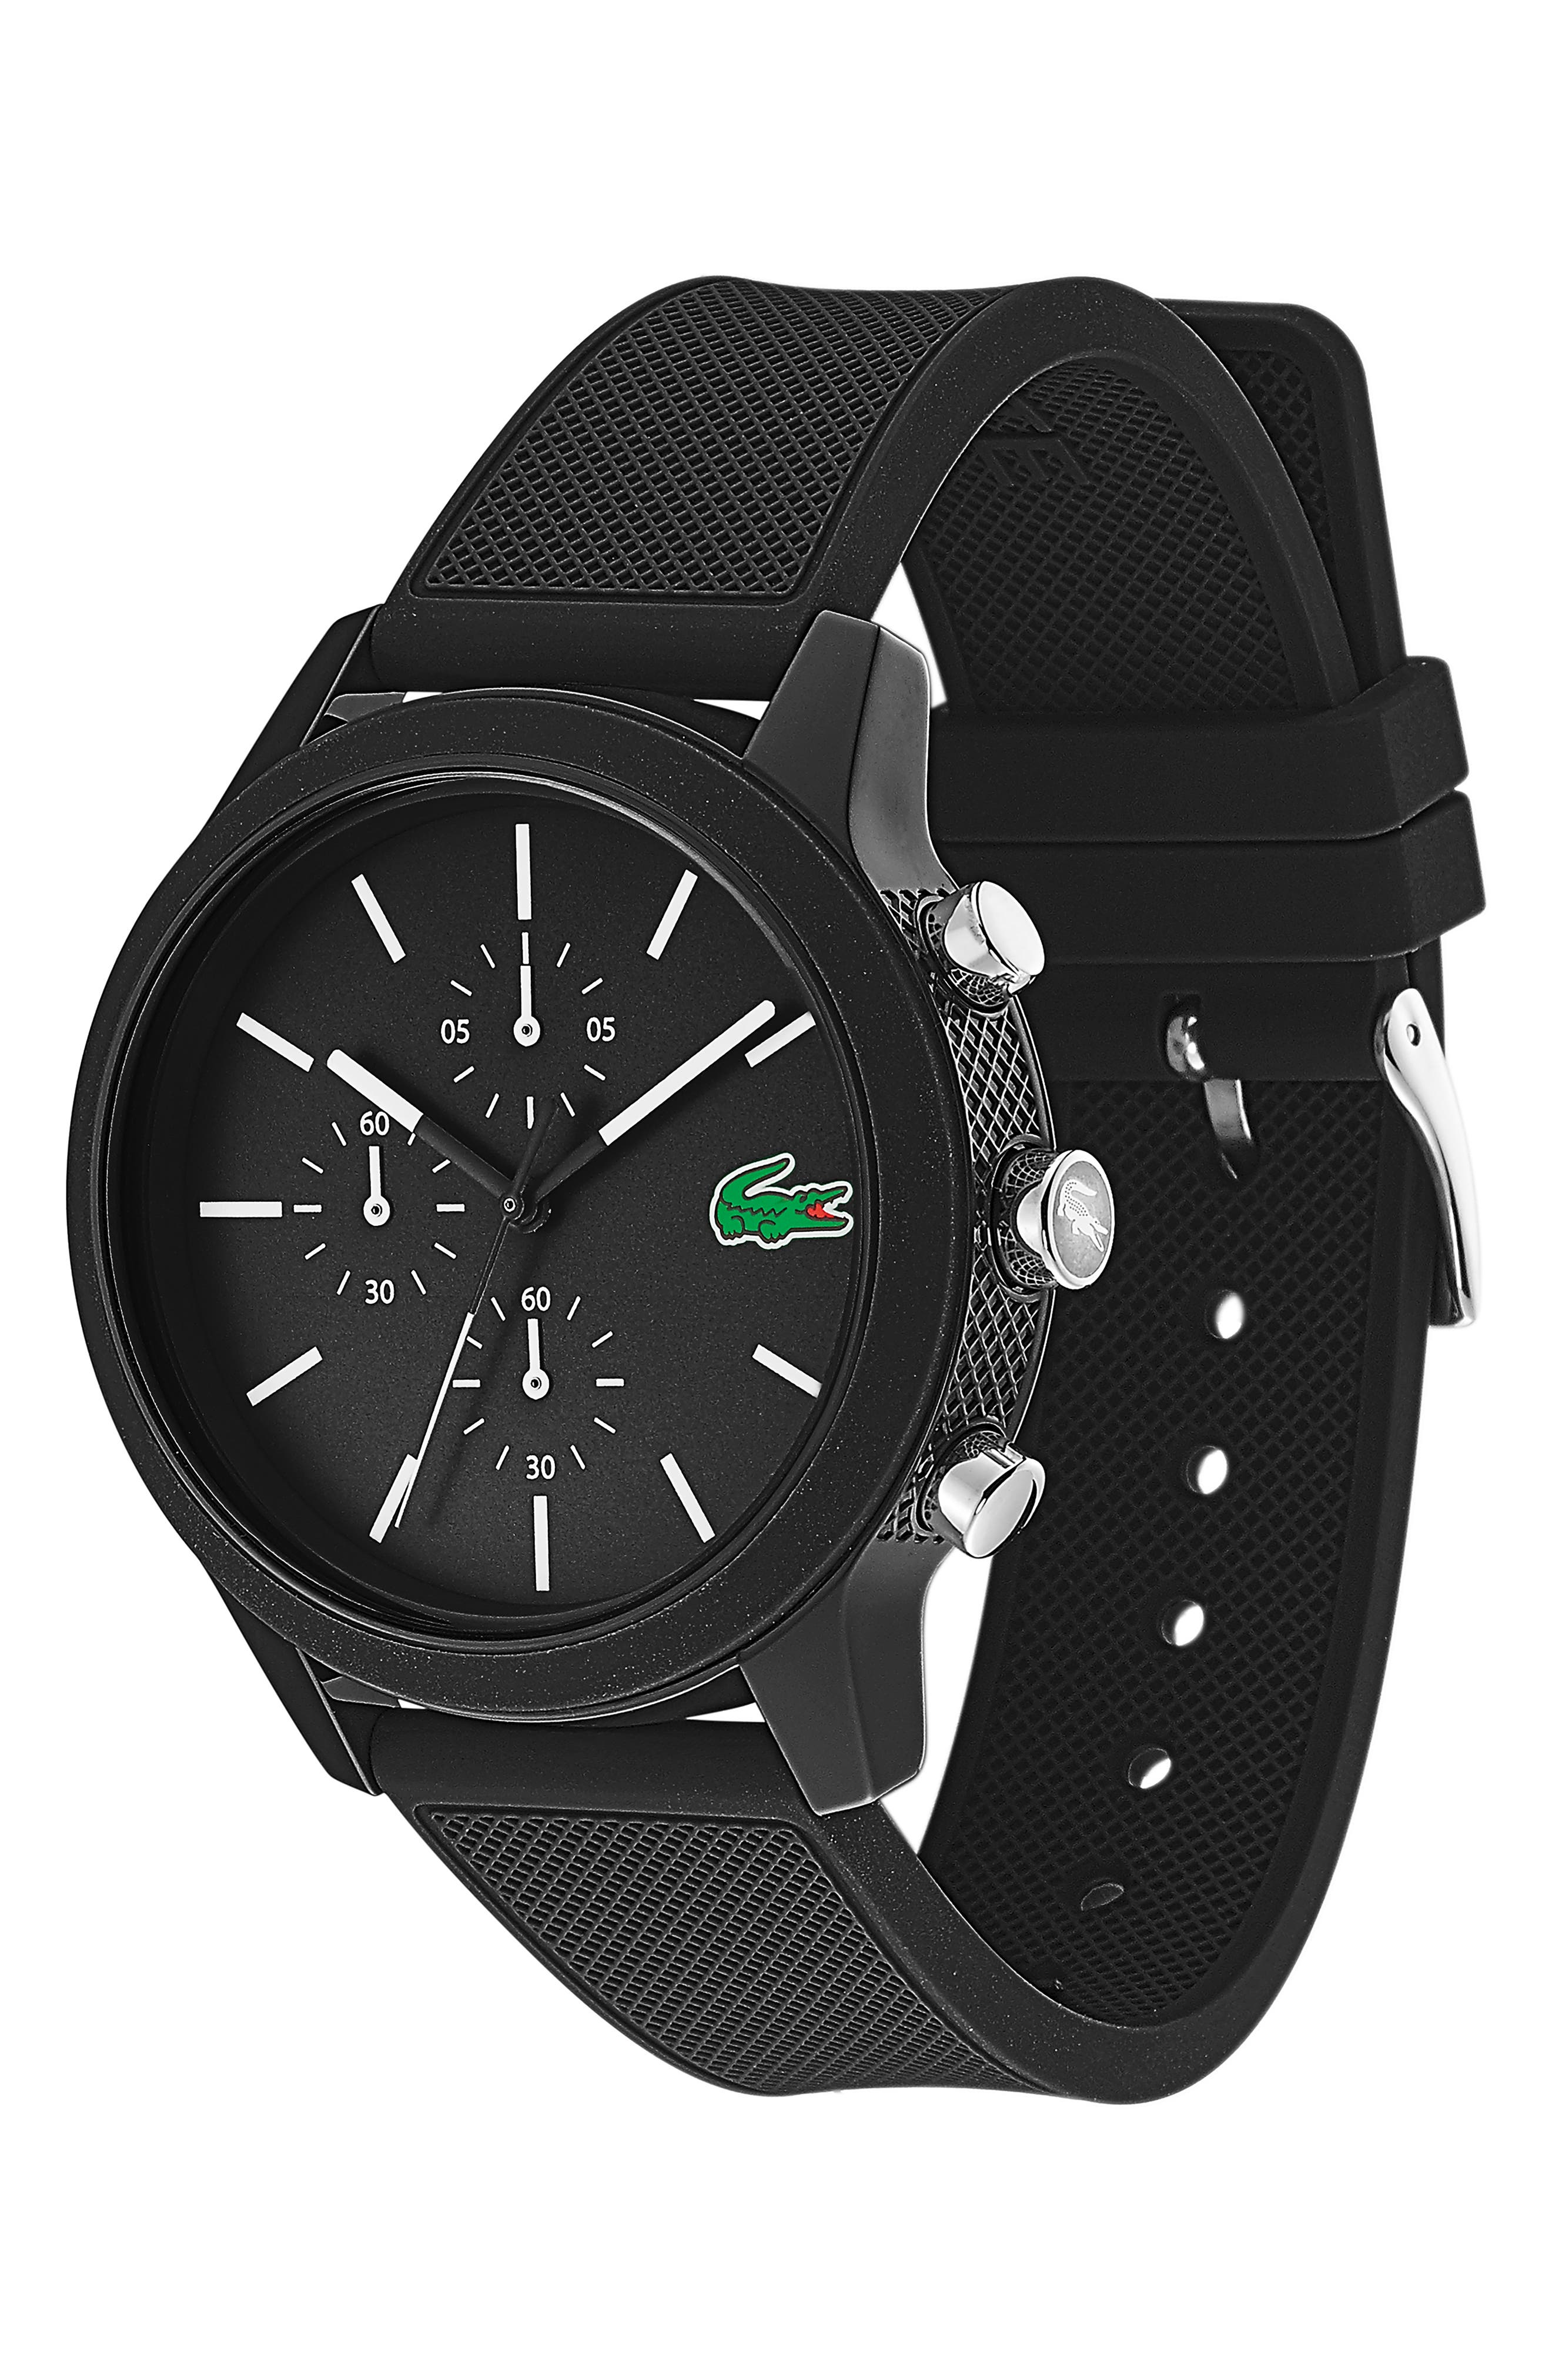 LACOSTE, 12.12 Chronograph Silicone Band Watch, 44mm, Alternate thumbnail 3, color, BLACK